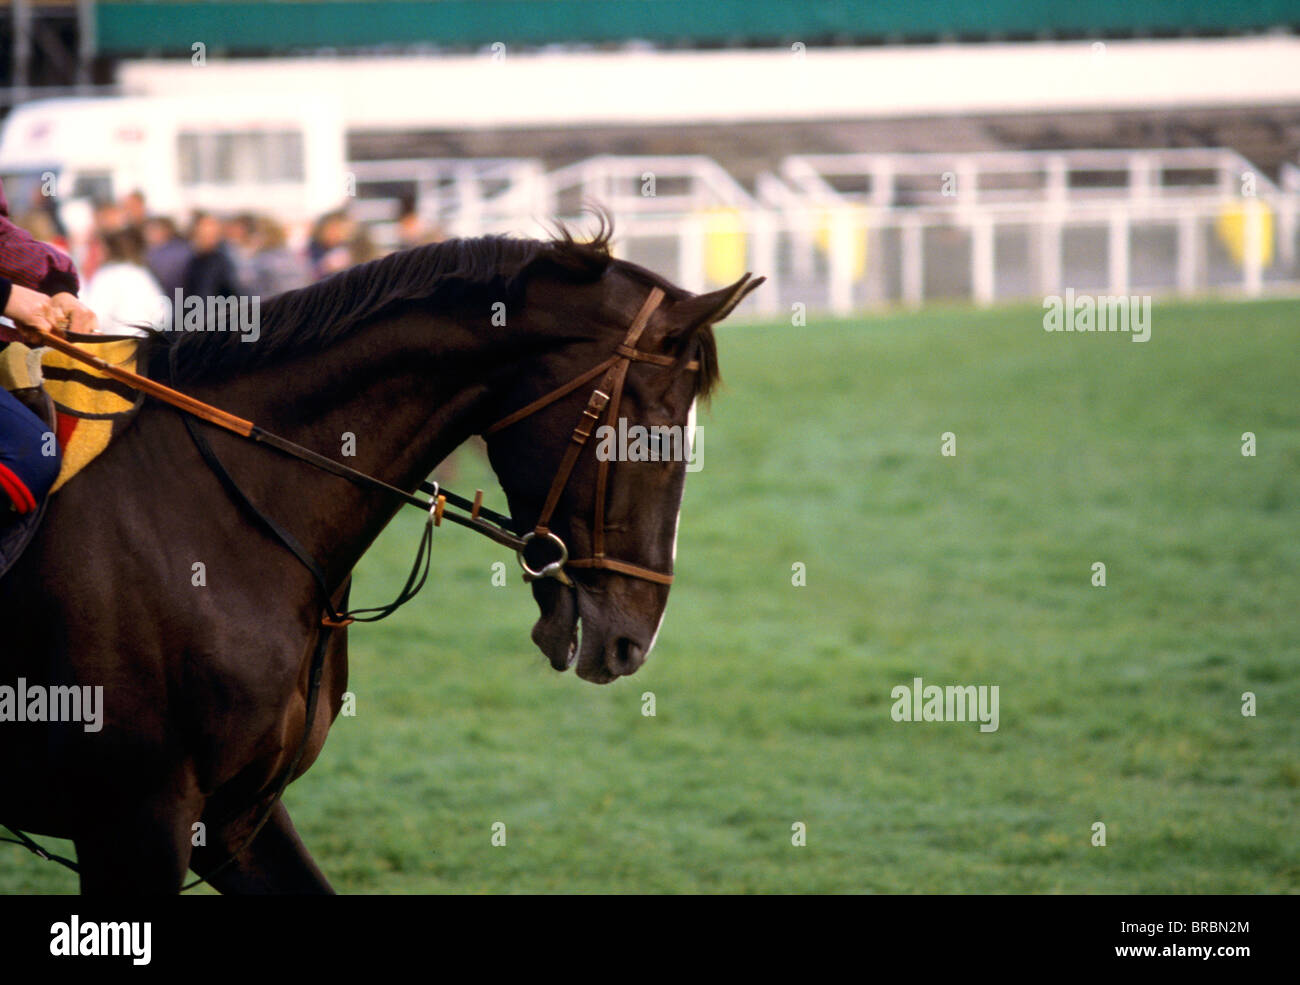 Horse being ridden towards starting stalls at race track - Stock Image